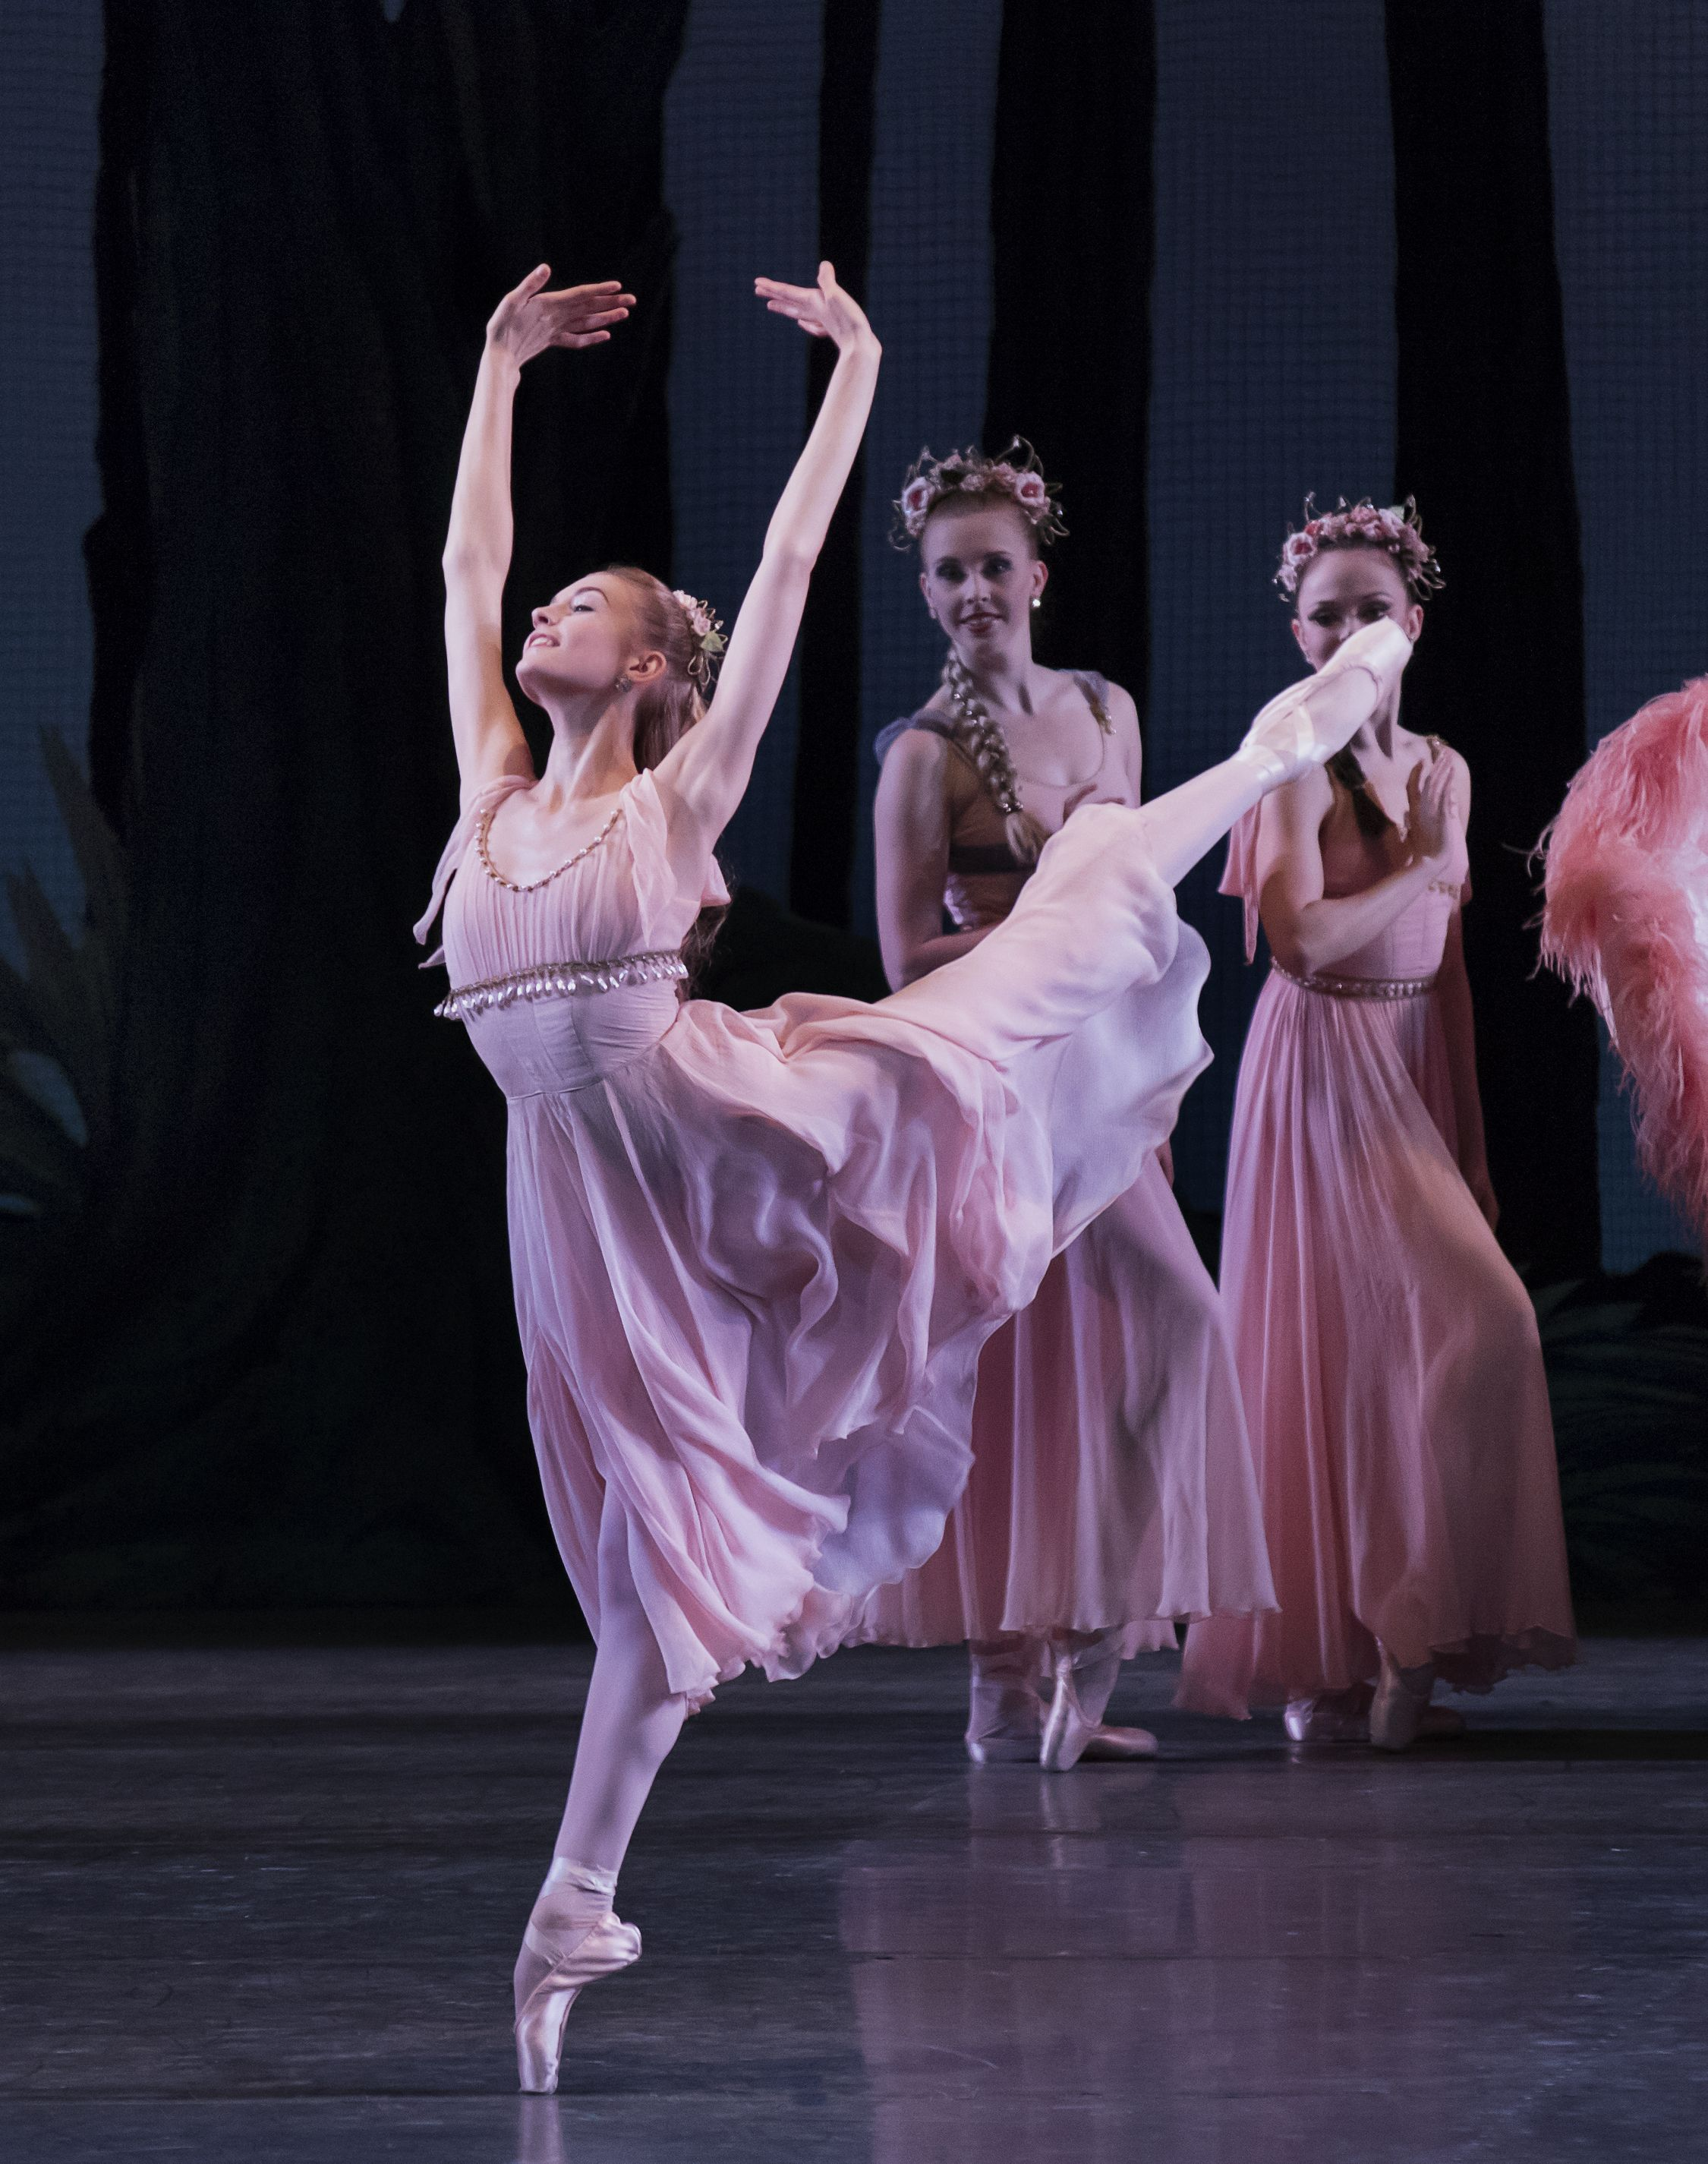 Pin By Maggie Porter On Dance First Think Later Dance Magazine Dance Photography Contemporary Ballet